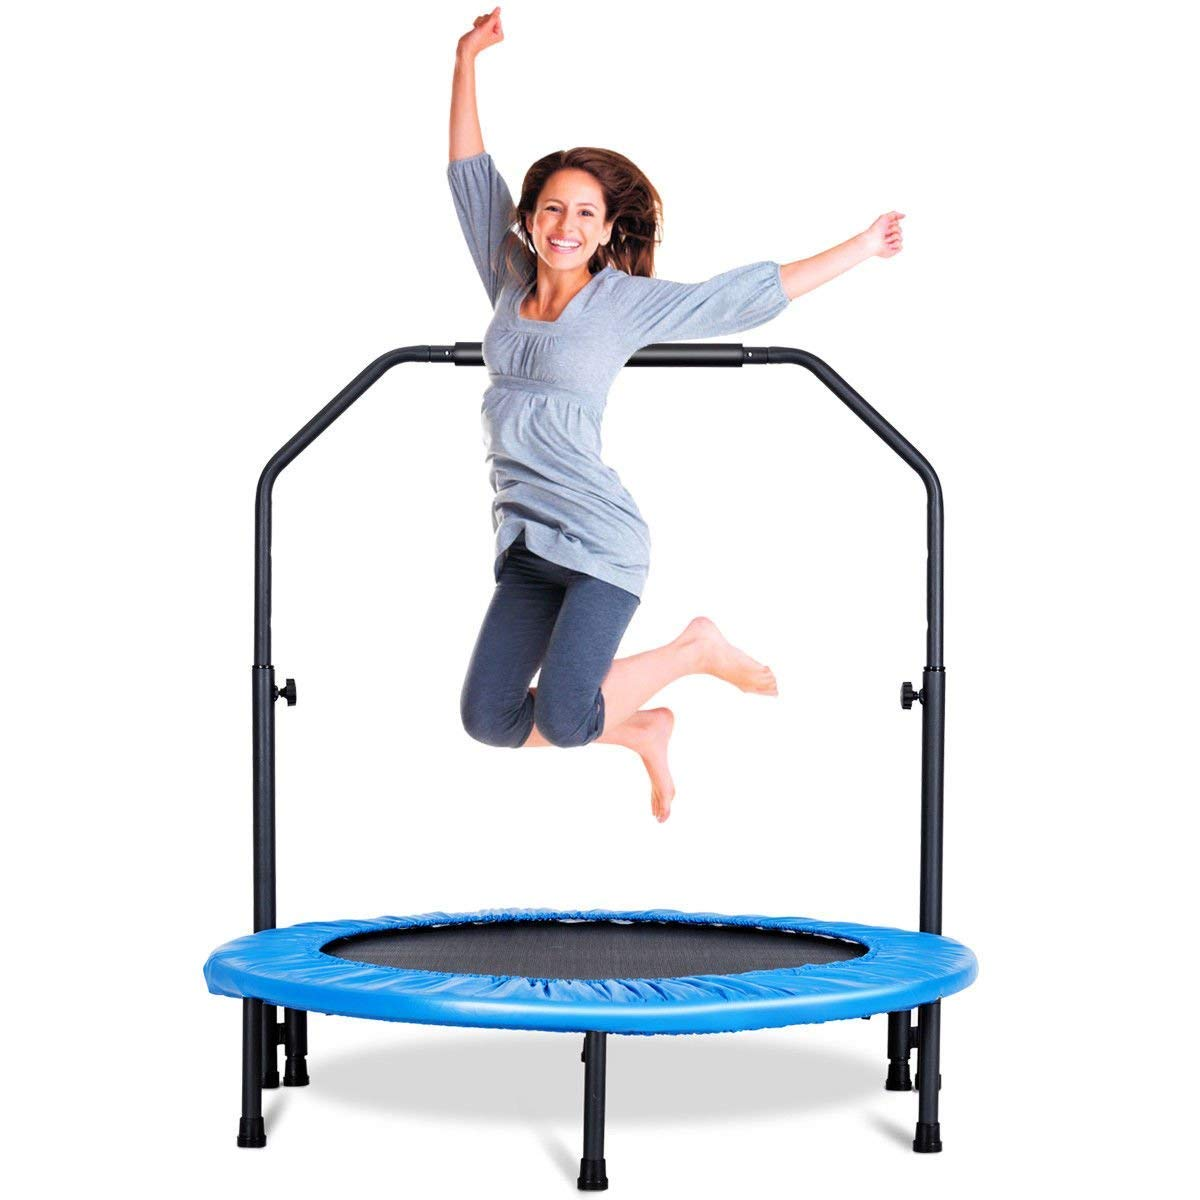 GYMAX Mini Trampoline, Rebounder Exercise Trampoline for Outdoor Indoor Fitness Workout, with Handle Rail by GYMAX (Image #5)